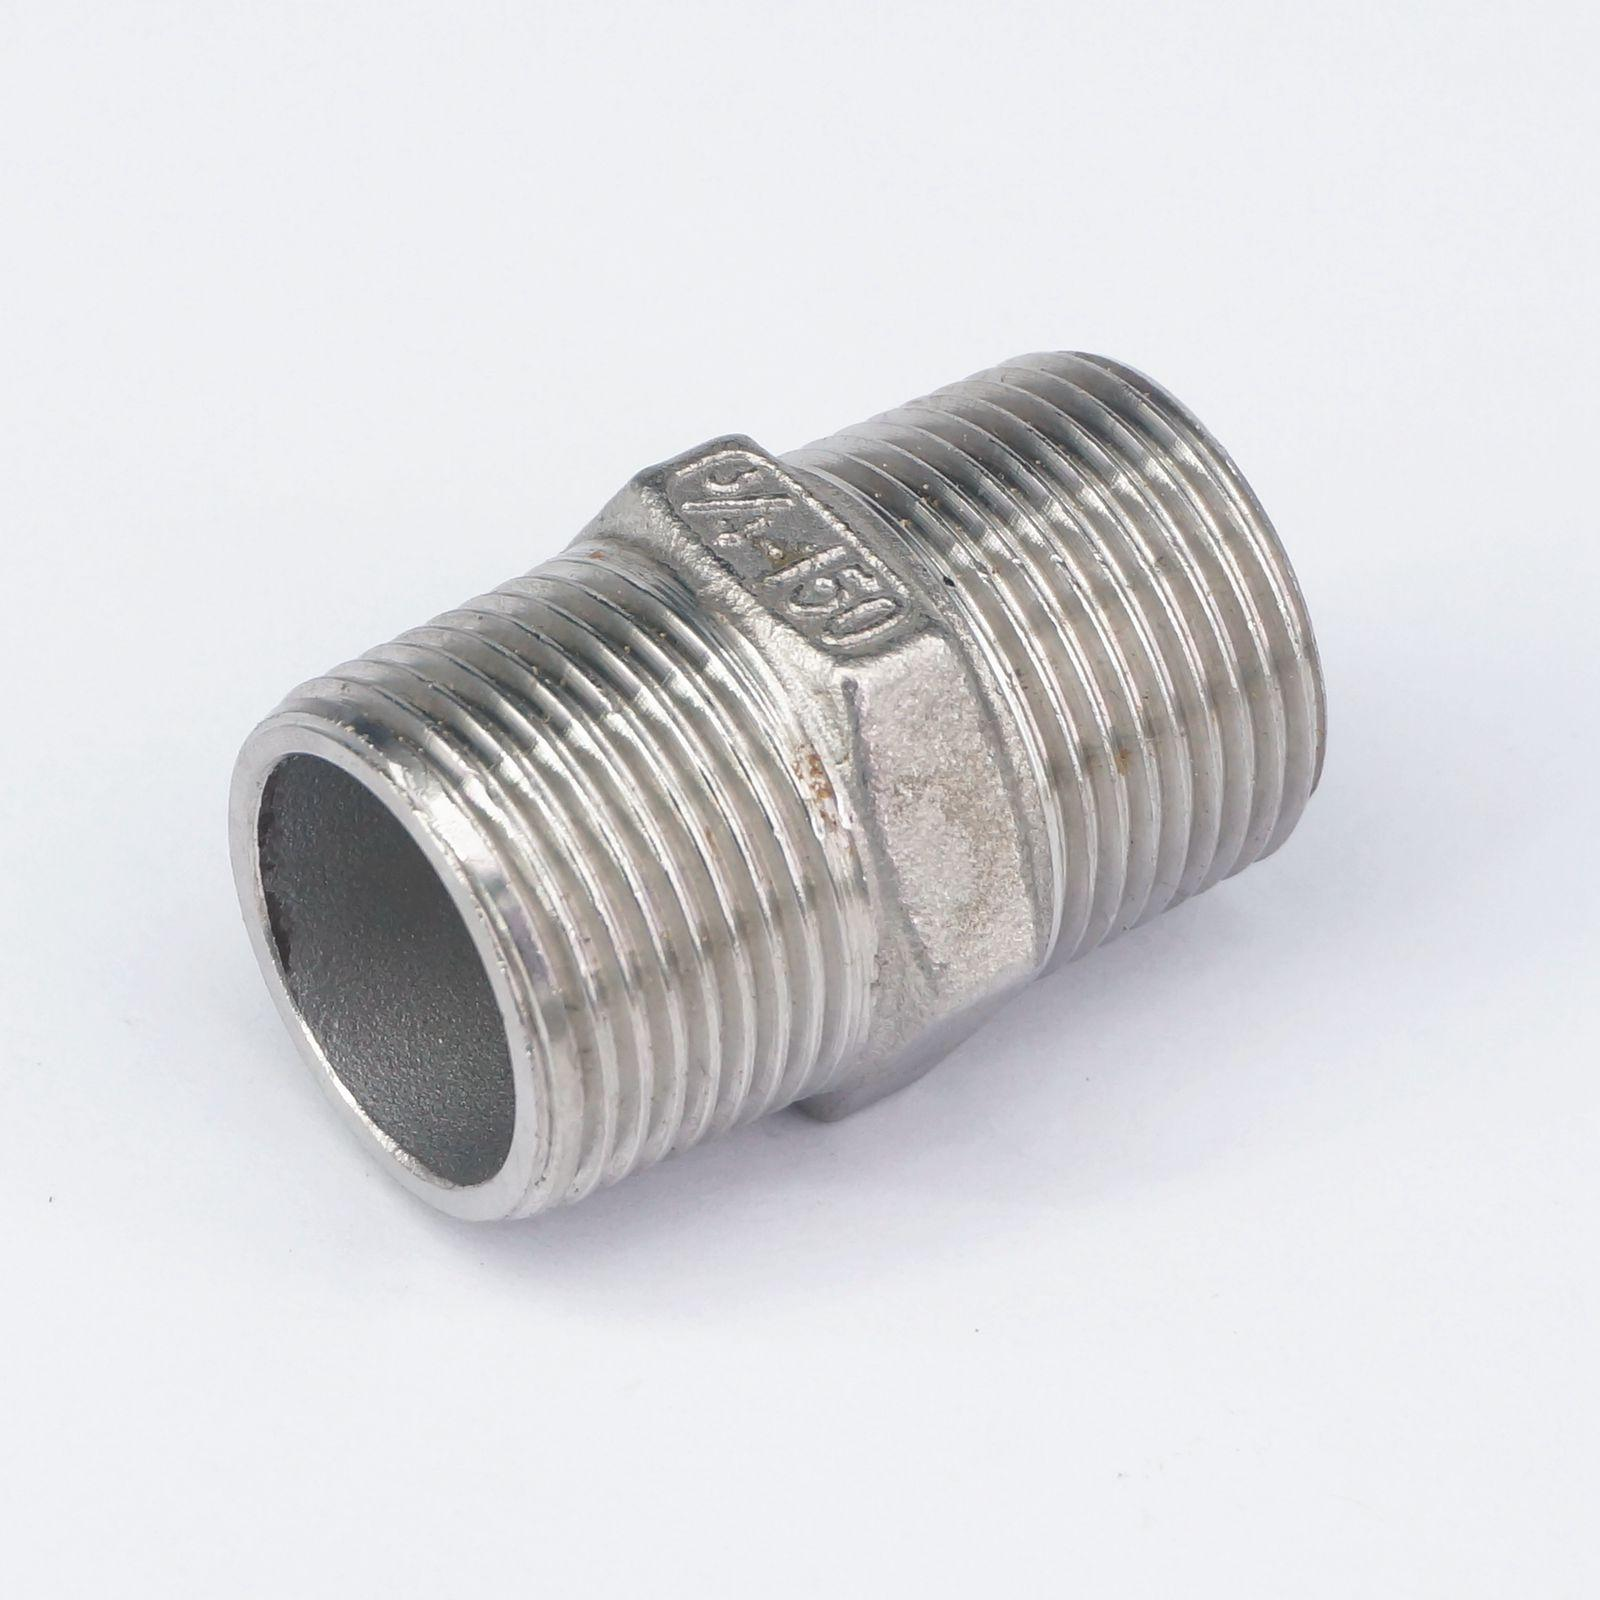 """3//4/"""" BSP Male Hex Nipple 304 Stanless Steel Pipe Fitting Connector 2855 PSI"""